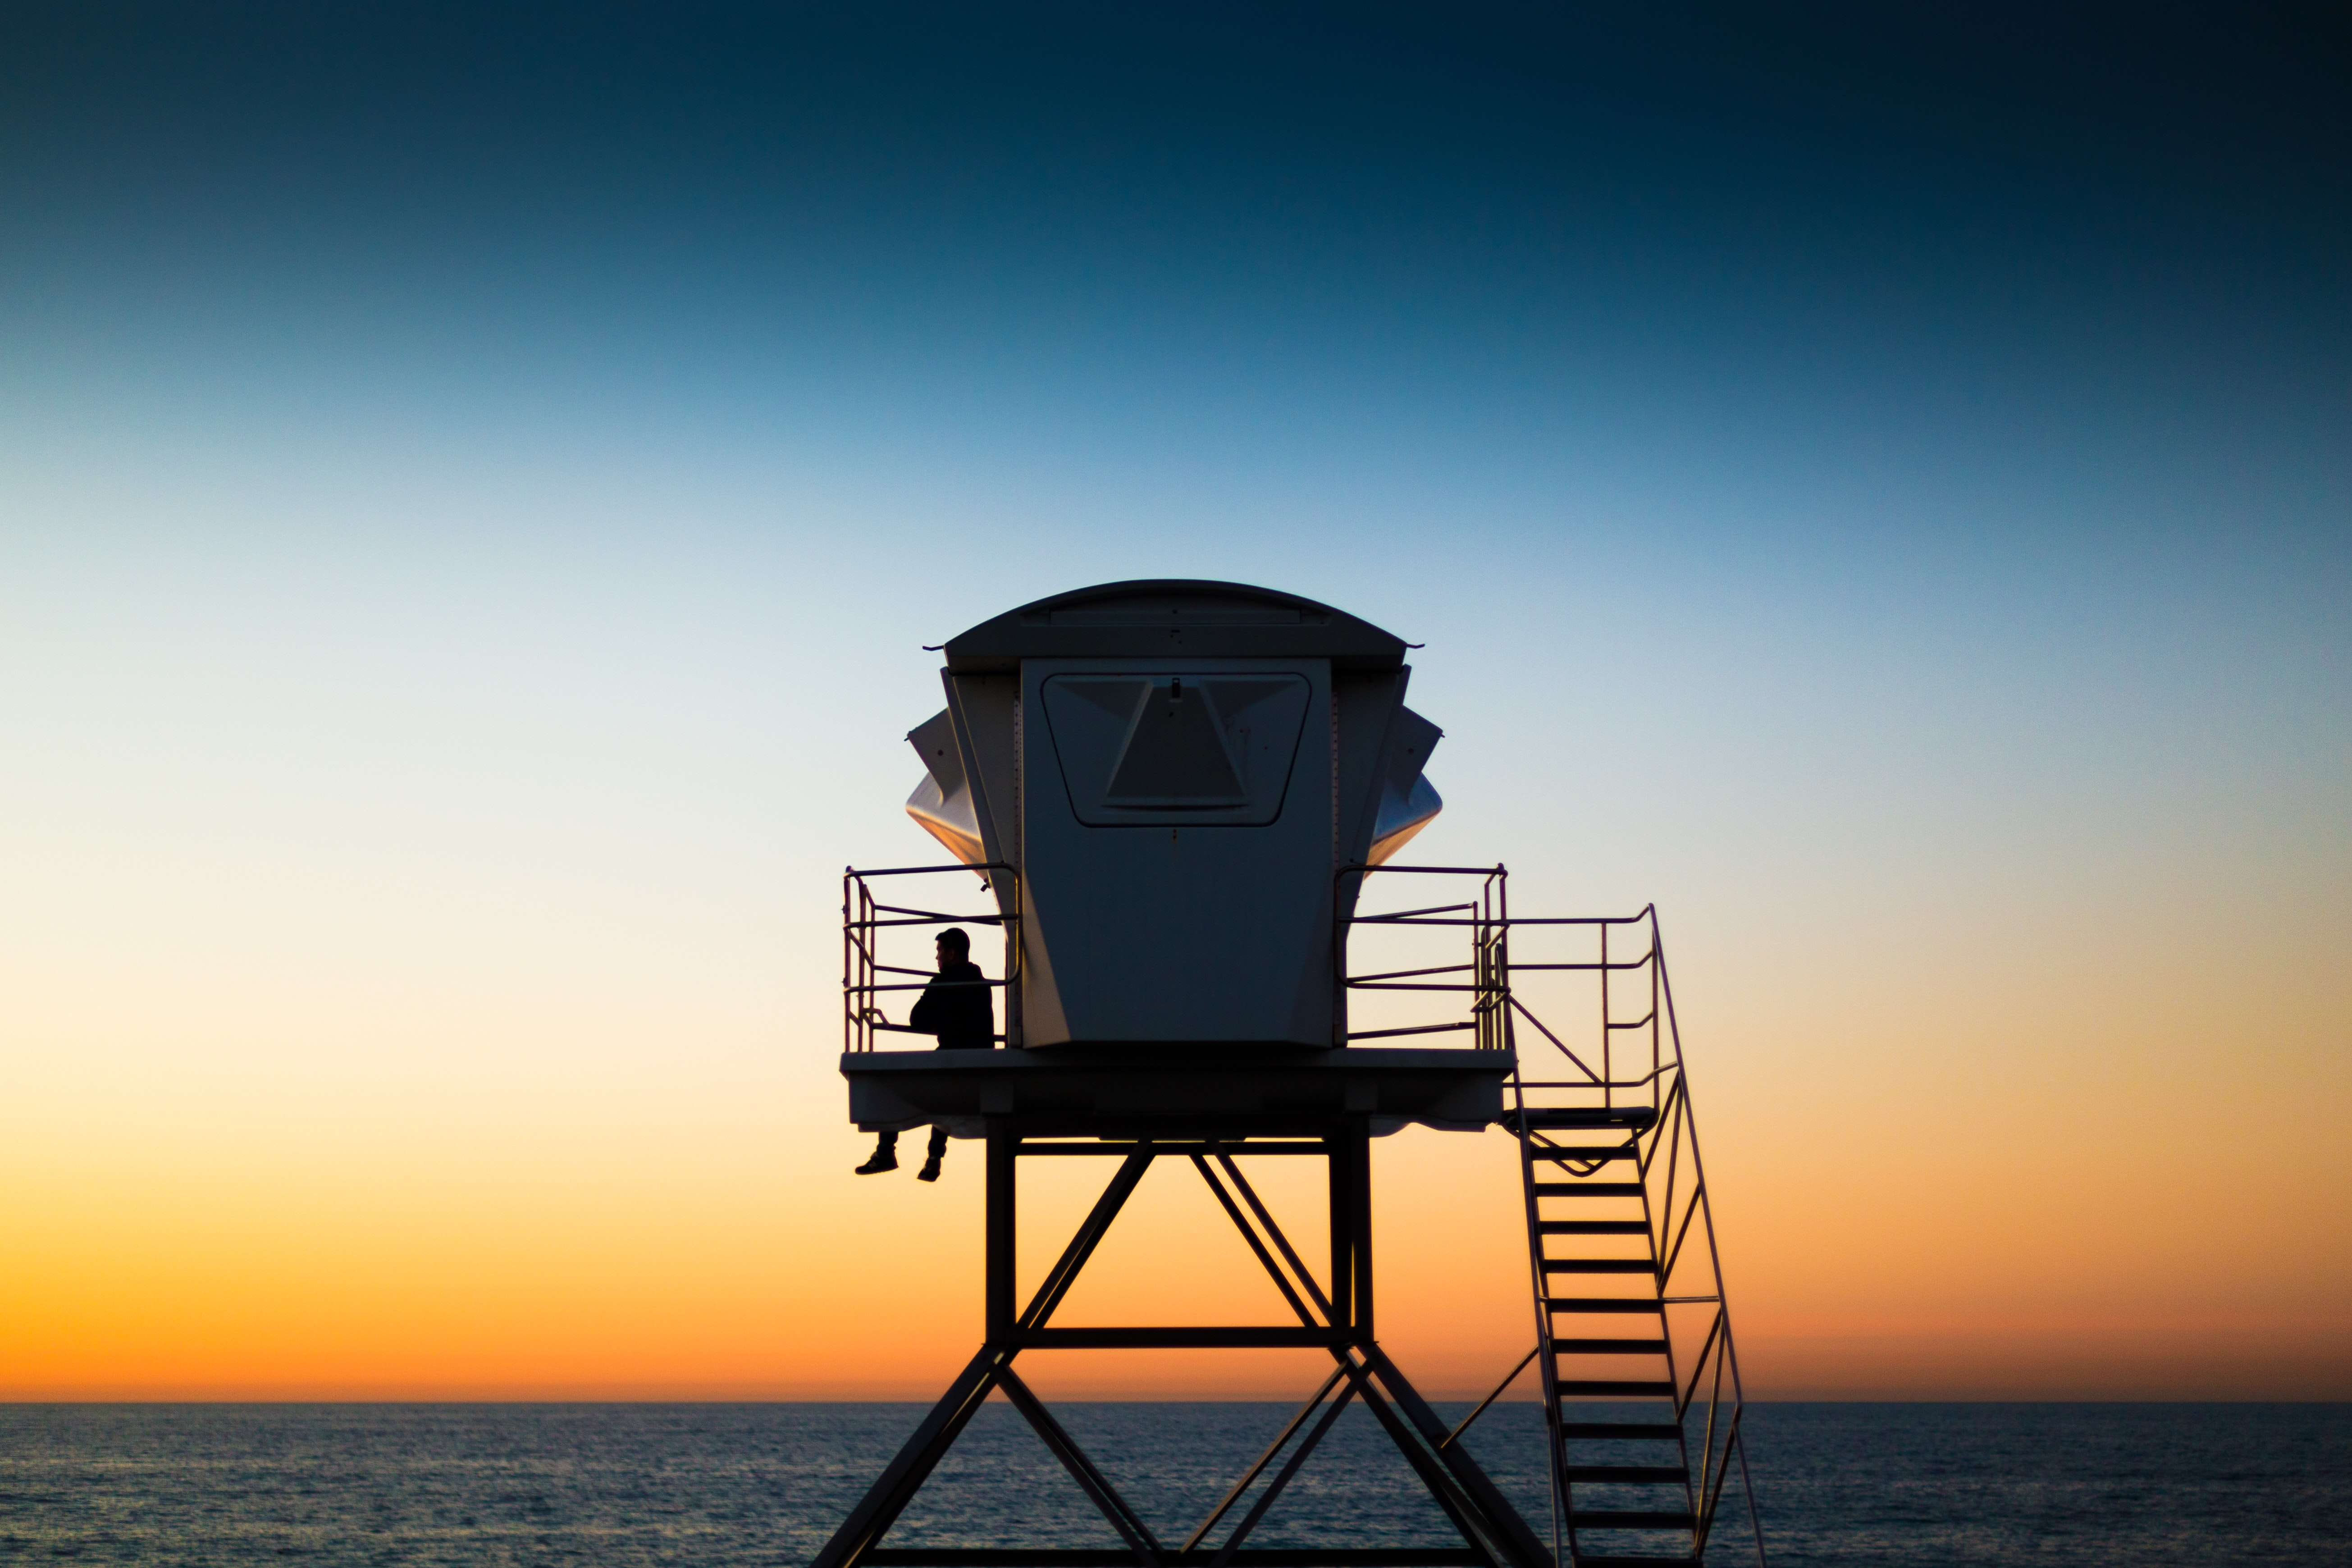 Silhouette of a man sitting alone against railing of a lifeguard tower, ocean and dusky sky in the background